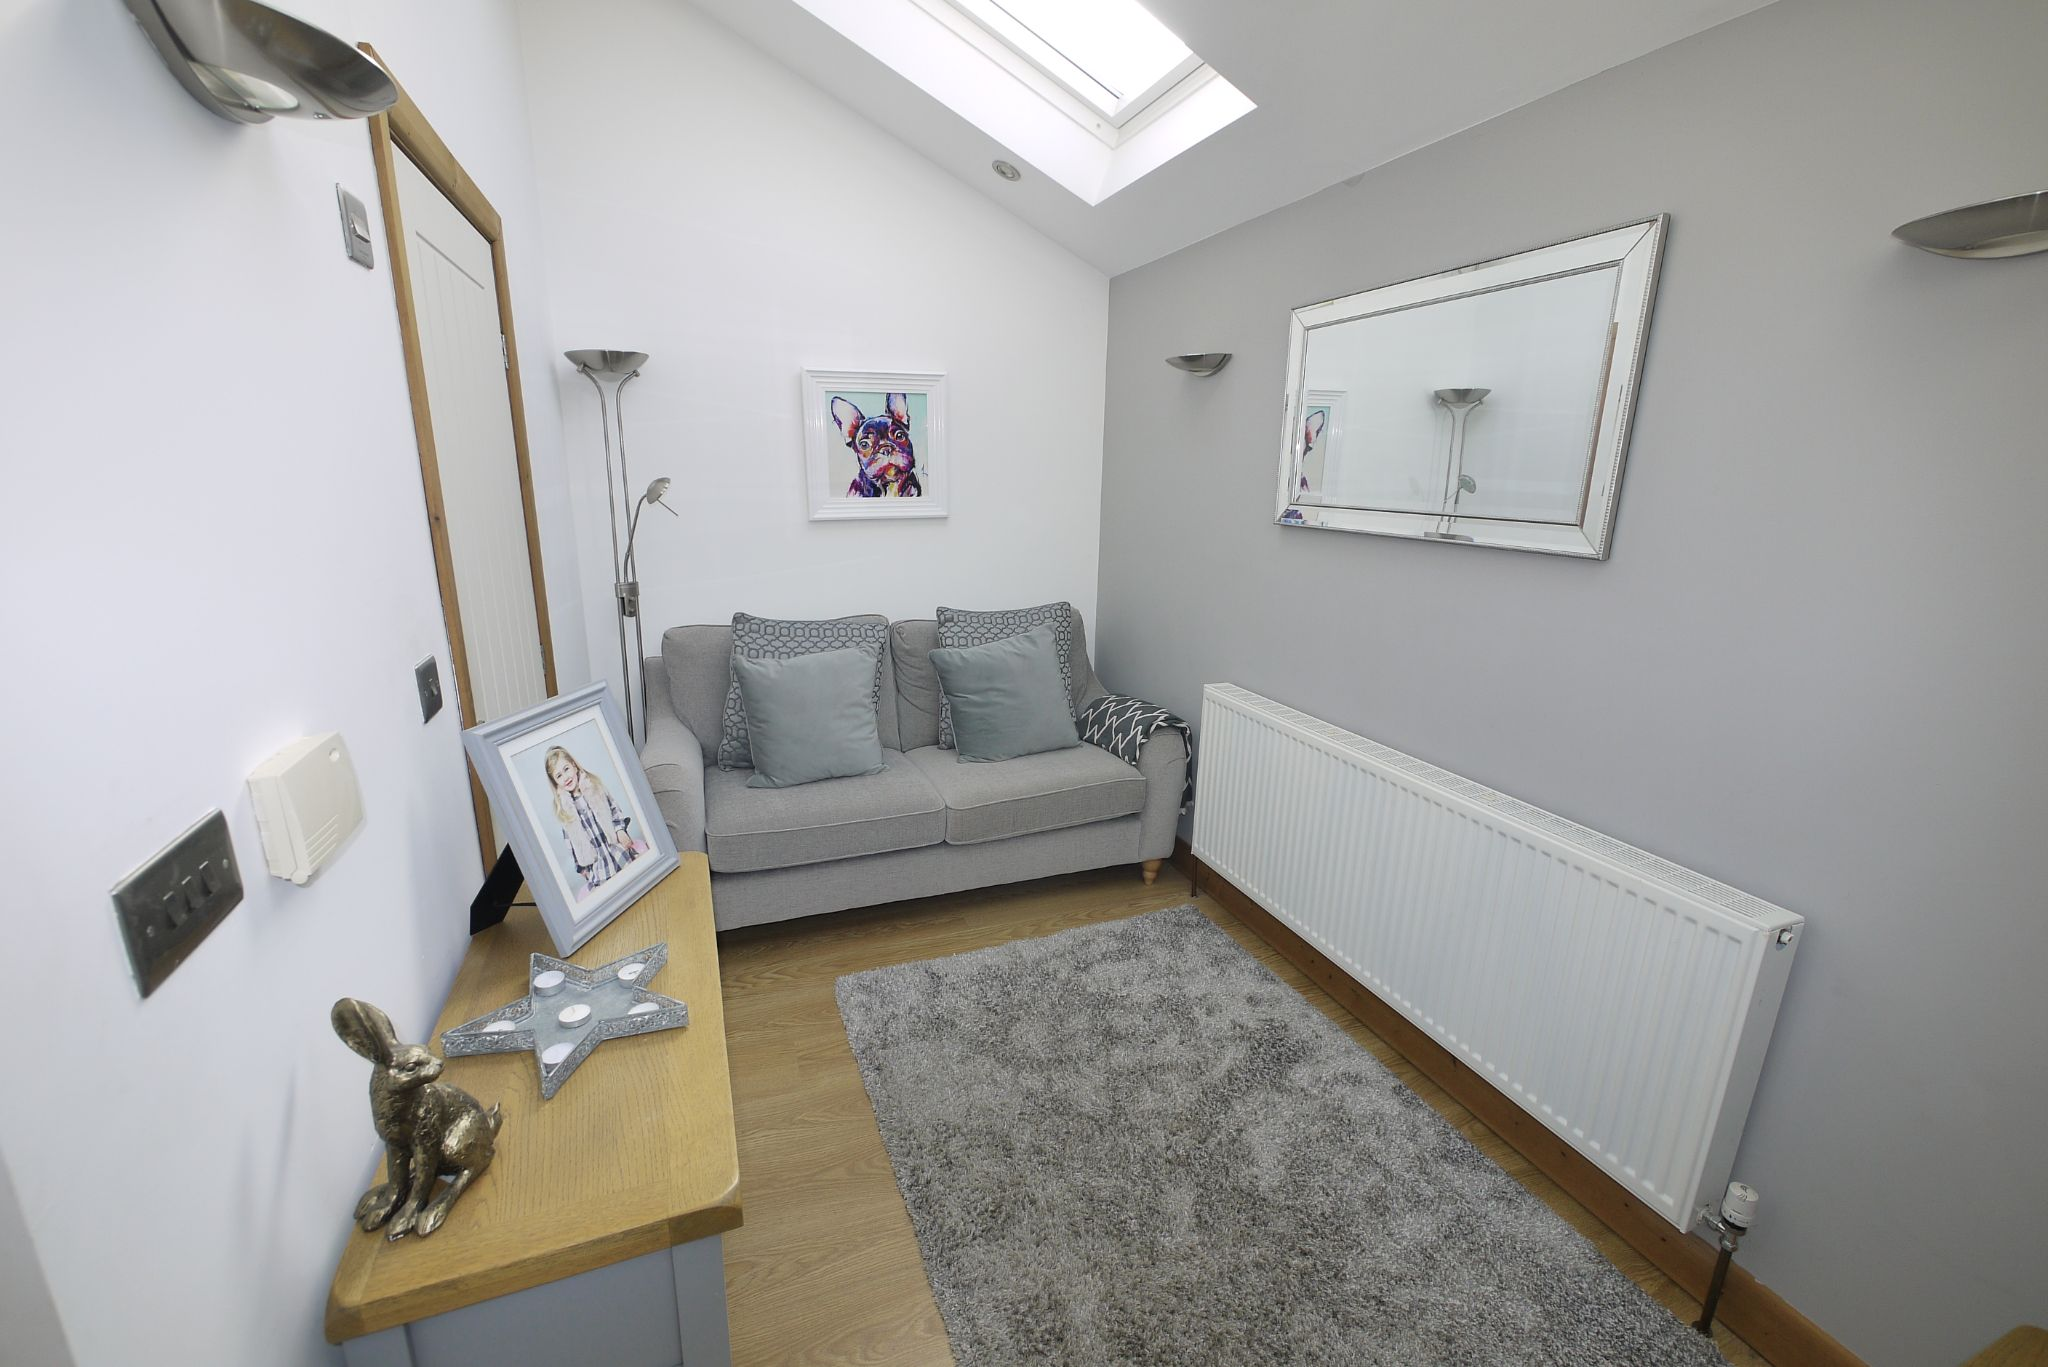 4 bedroom detached house SSTC in Brighouse - Study/Bed 4a.